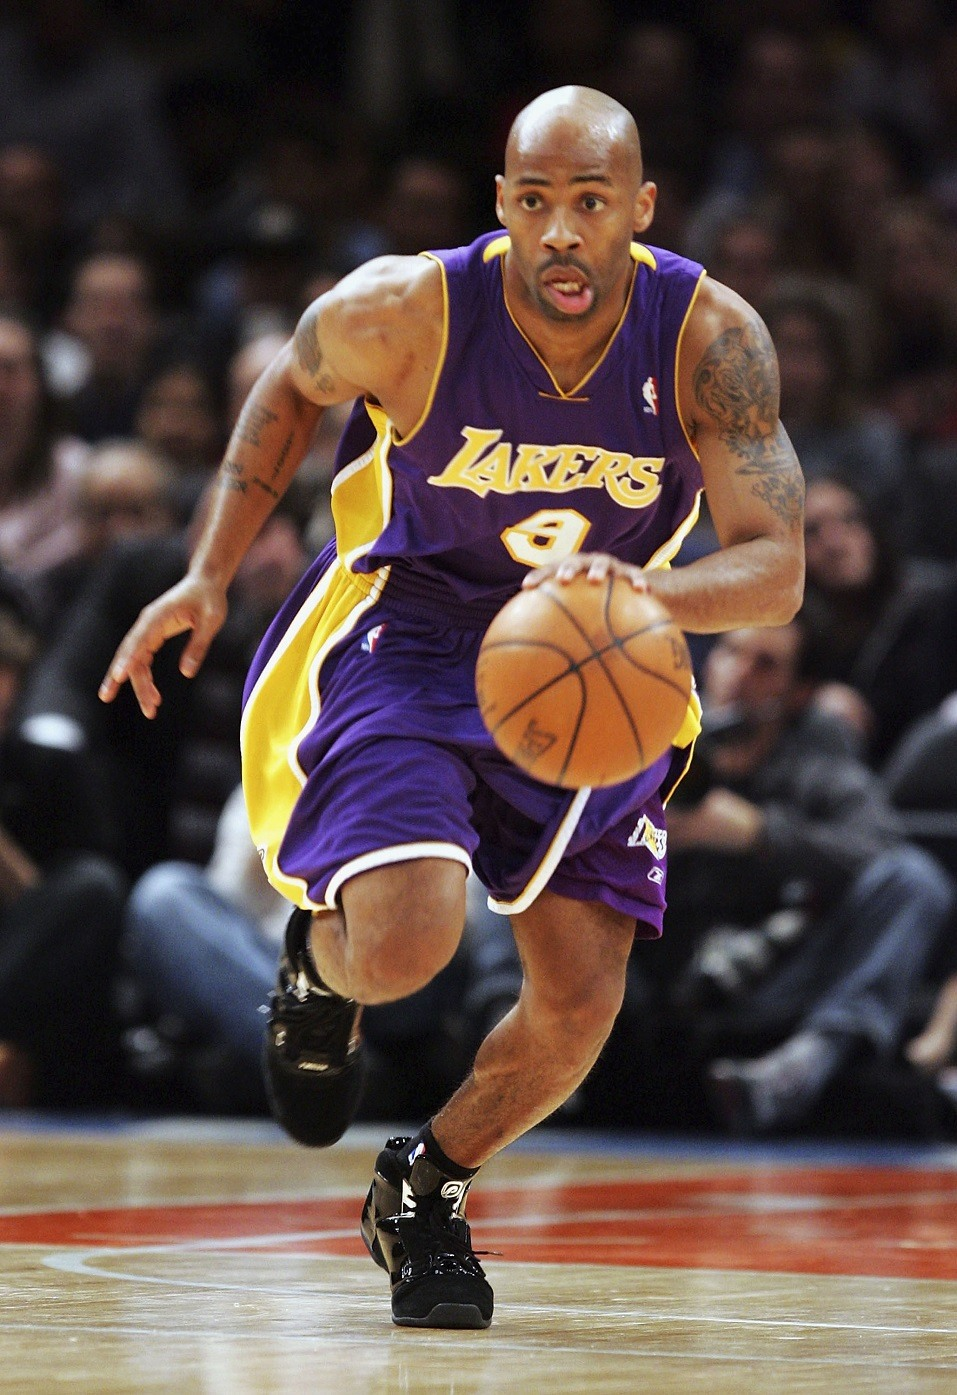 Chucky Atkins #9 of the Los Angeles Lakers